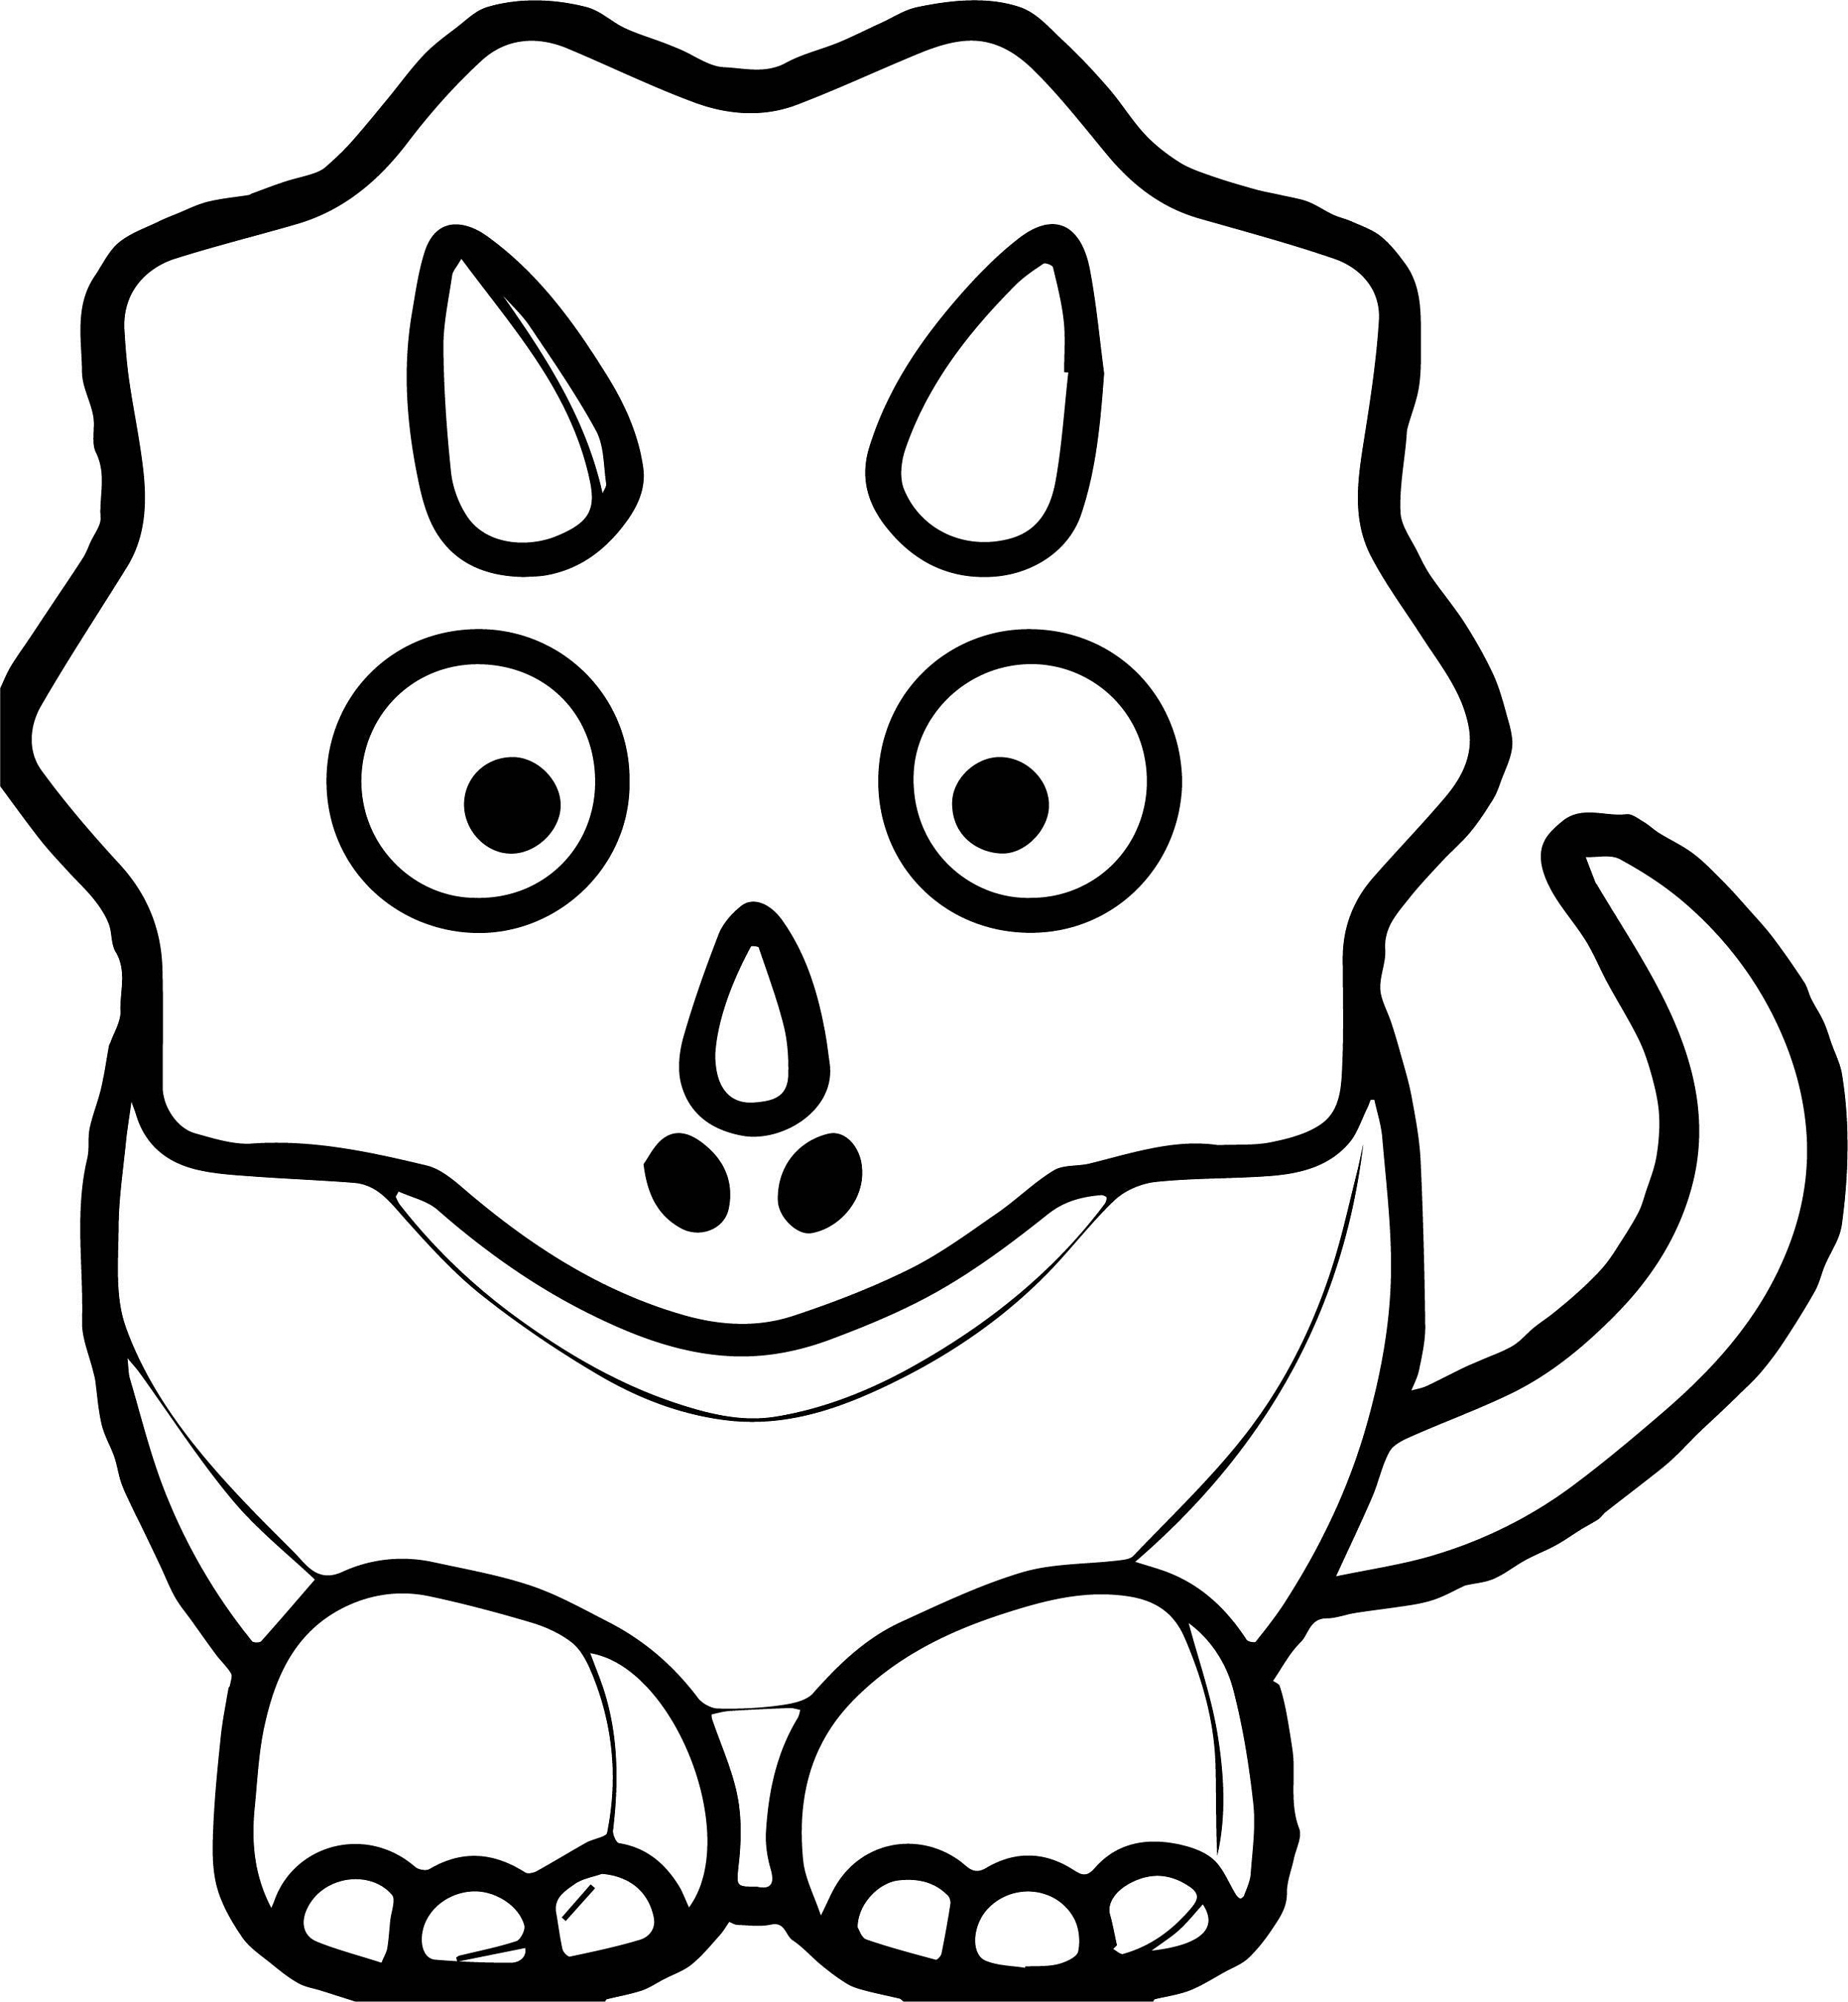 dinosaurs to colour in coloring pages dinosaur free printable coloring pages colour dinosaurs to in